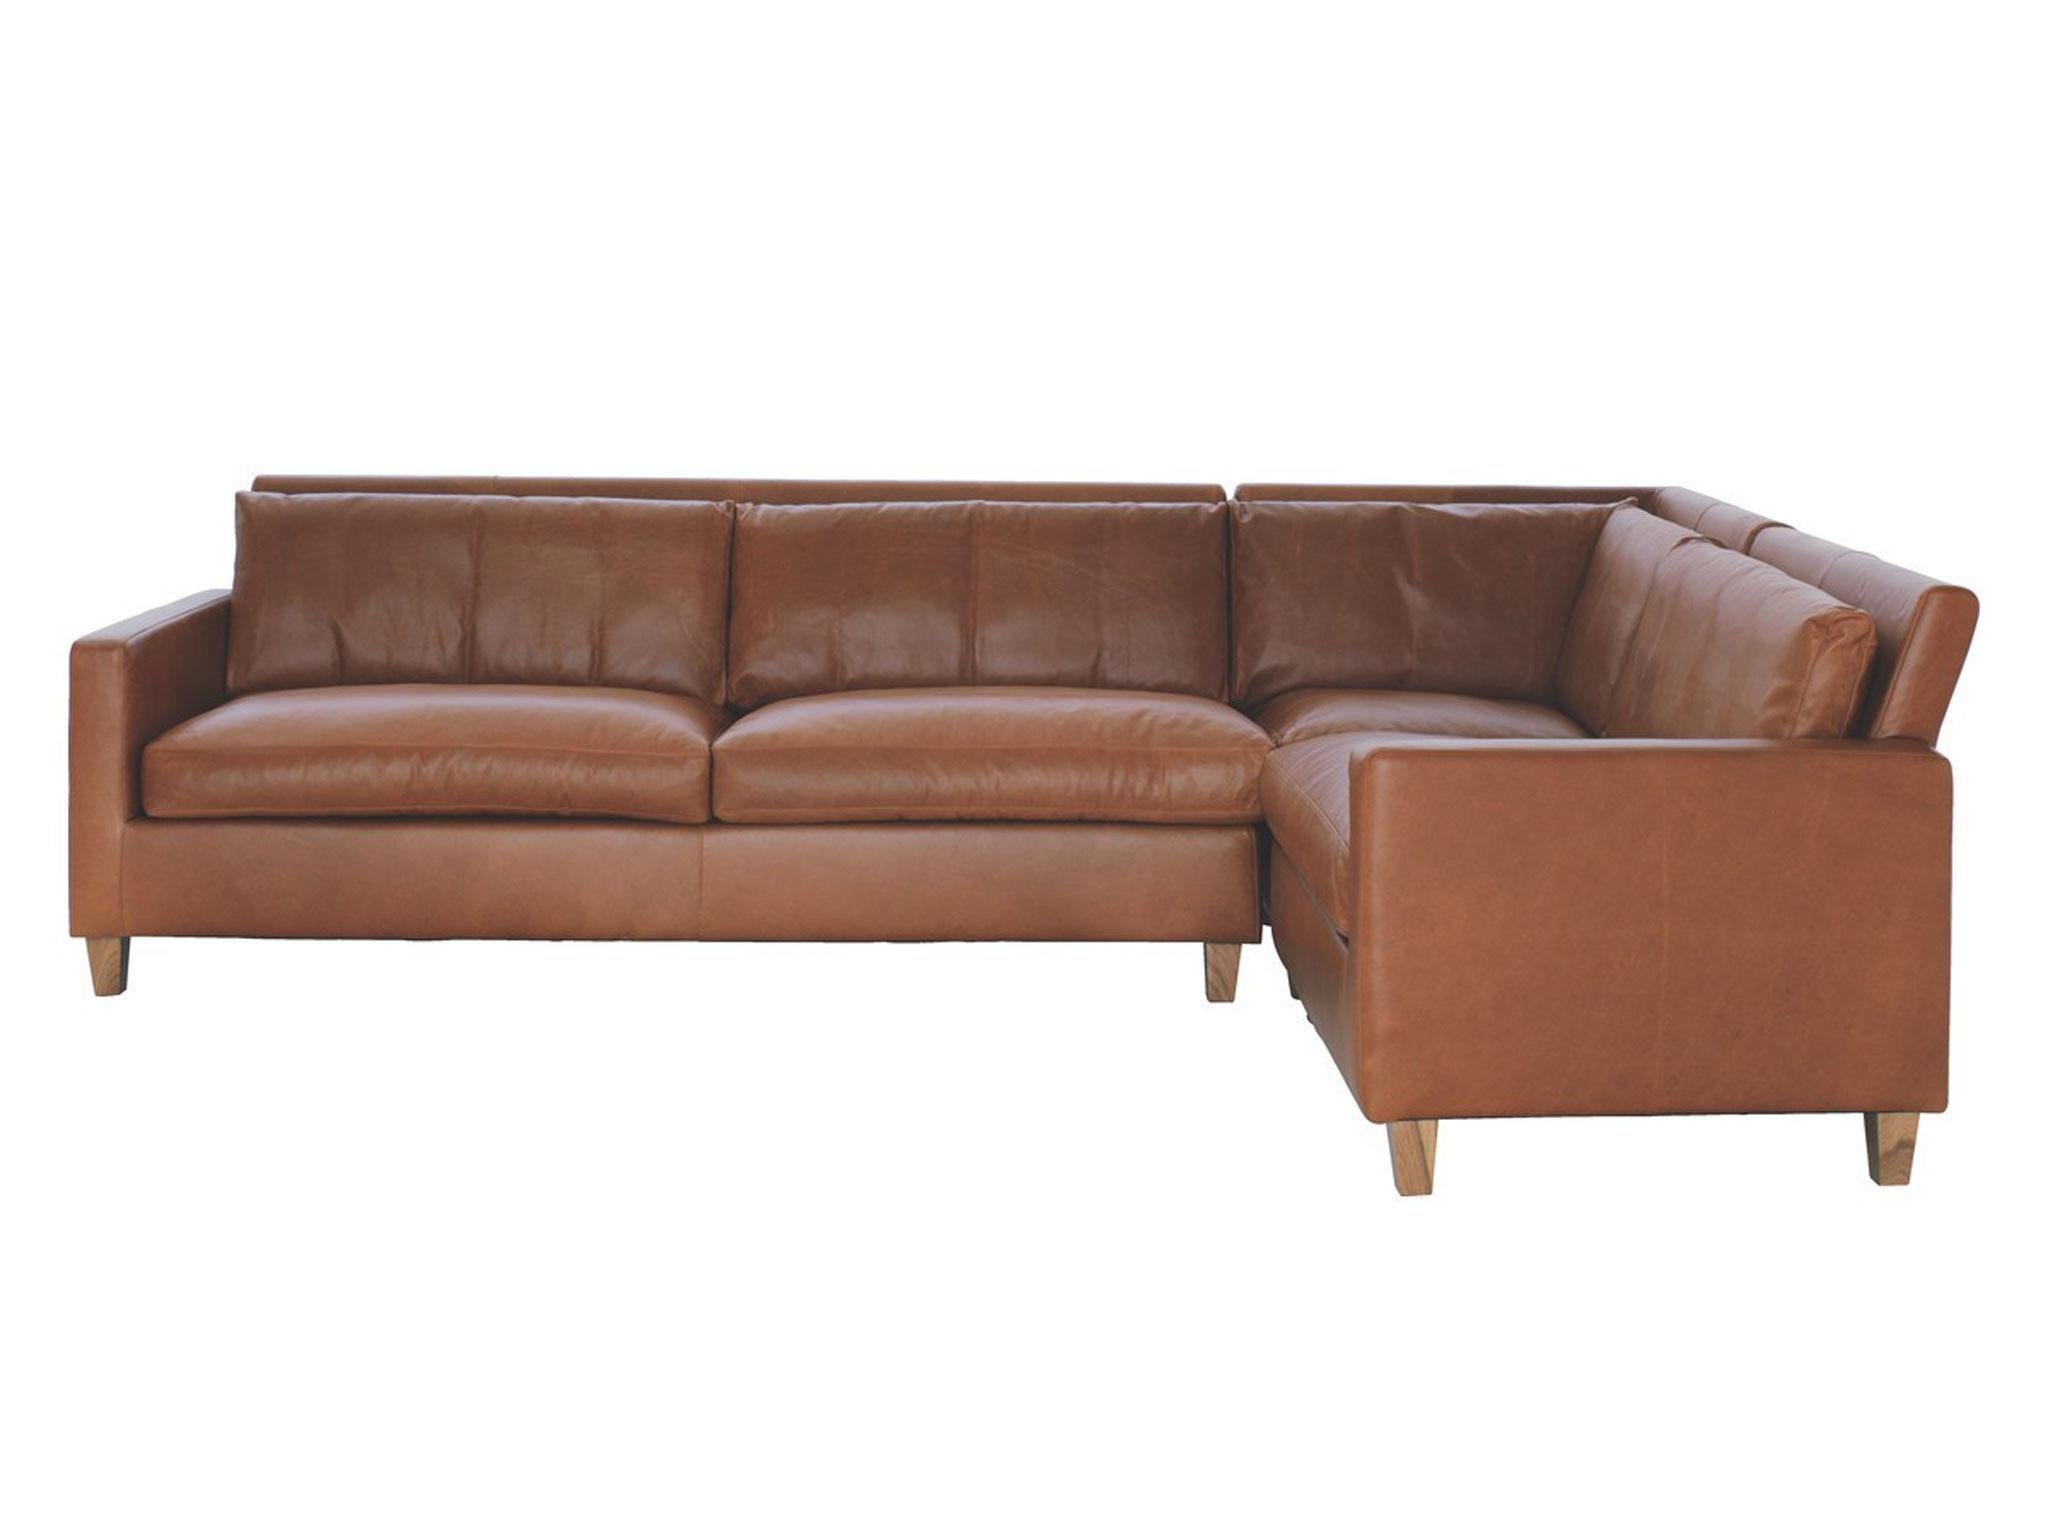 Which sofa is better to choose, corner or normal 8